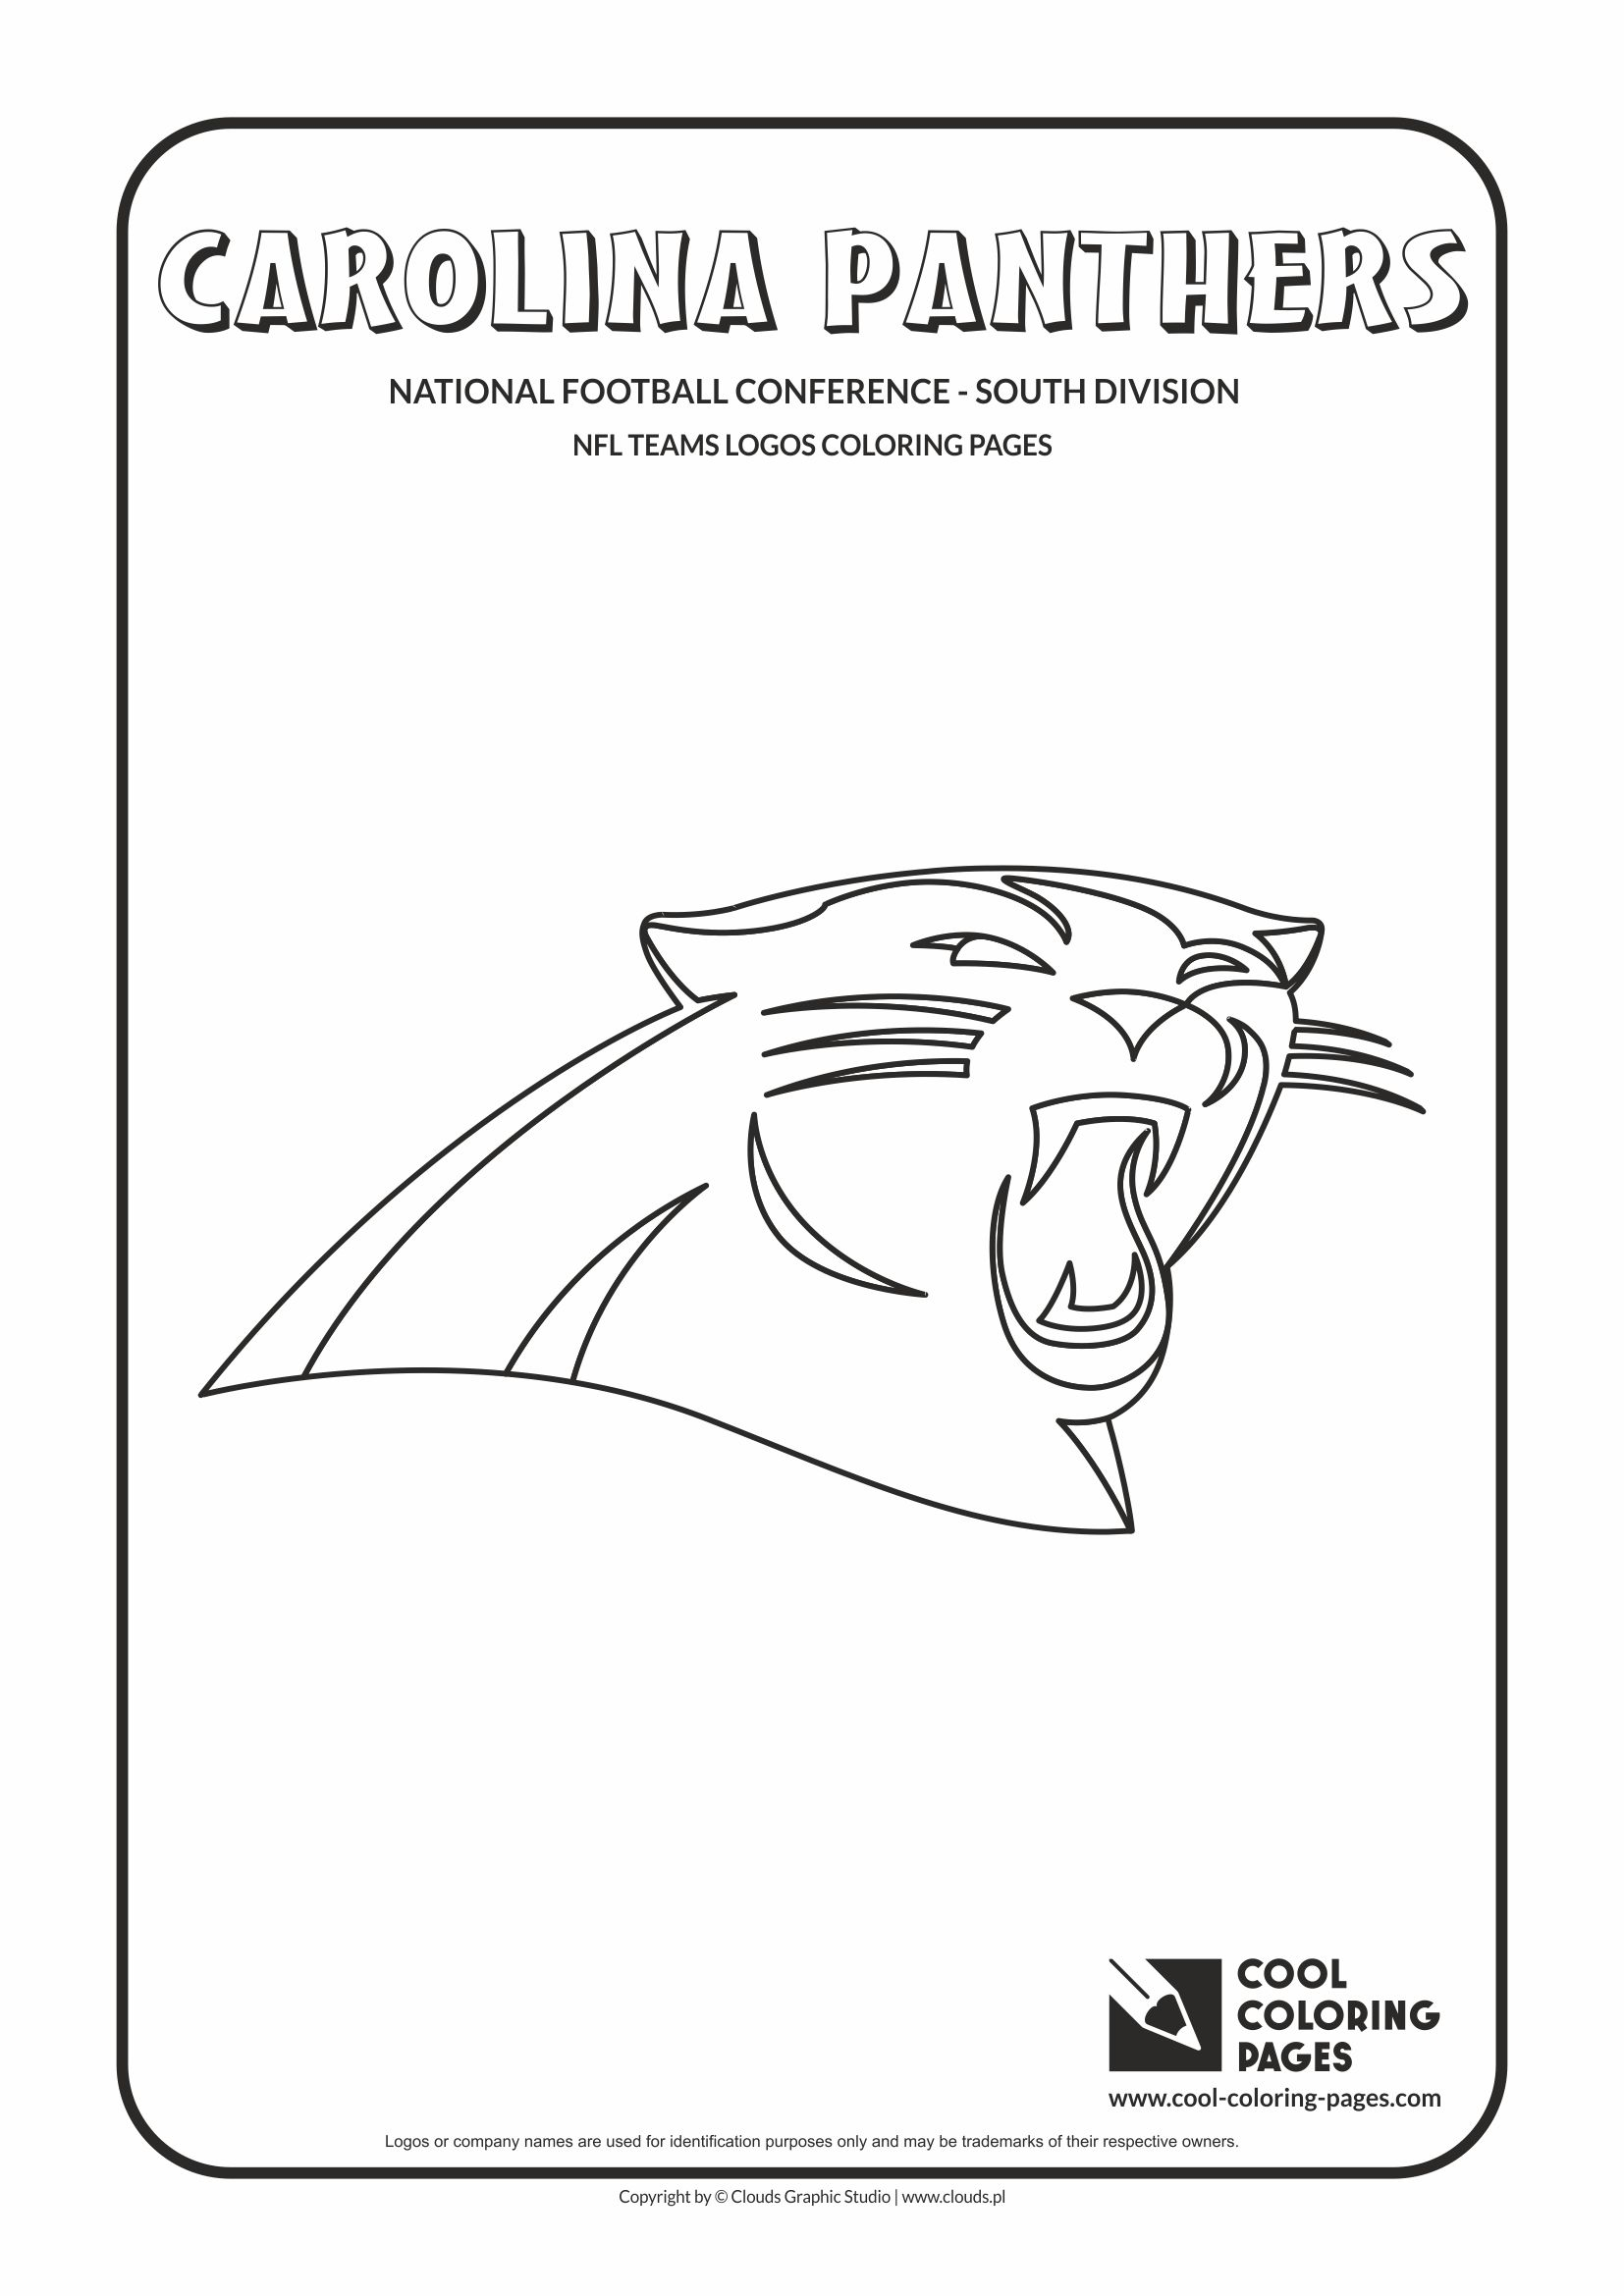 Fsu Team Logos Coloring Pages Coloring Pages Cool Coloring Pages Nfl